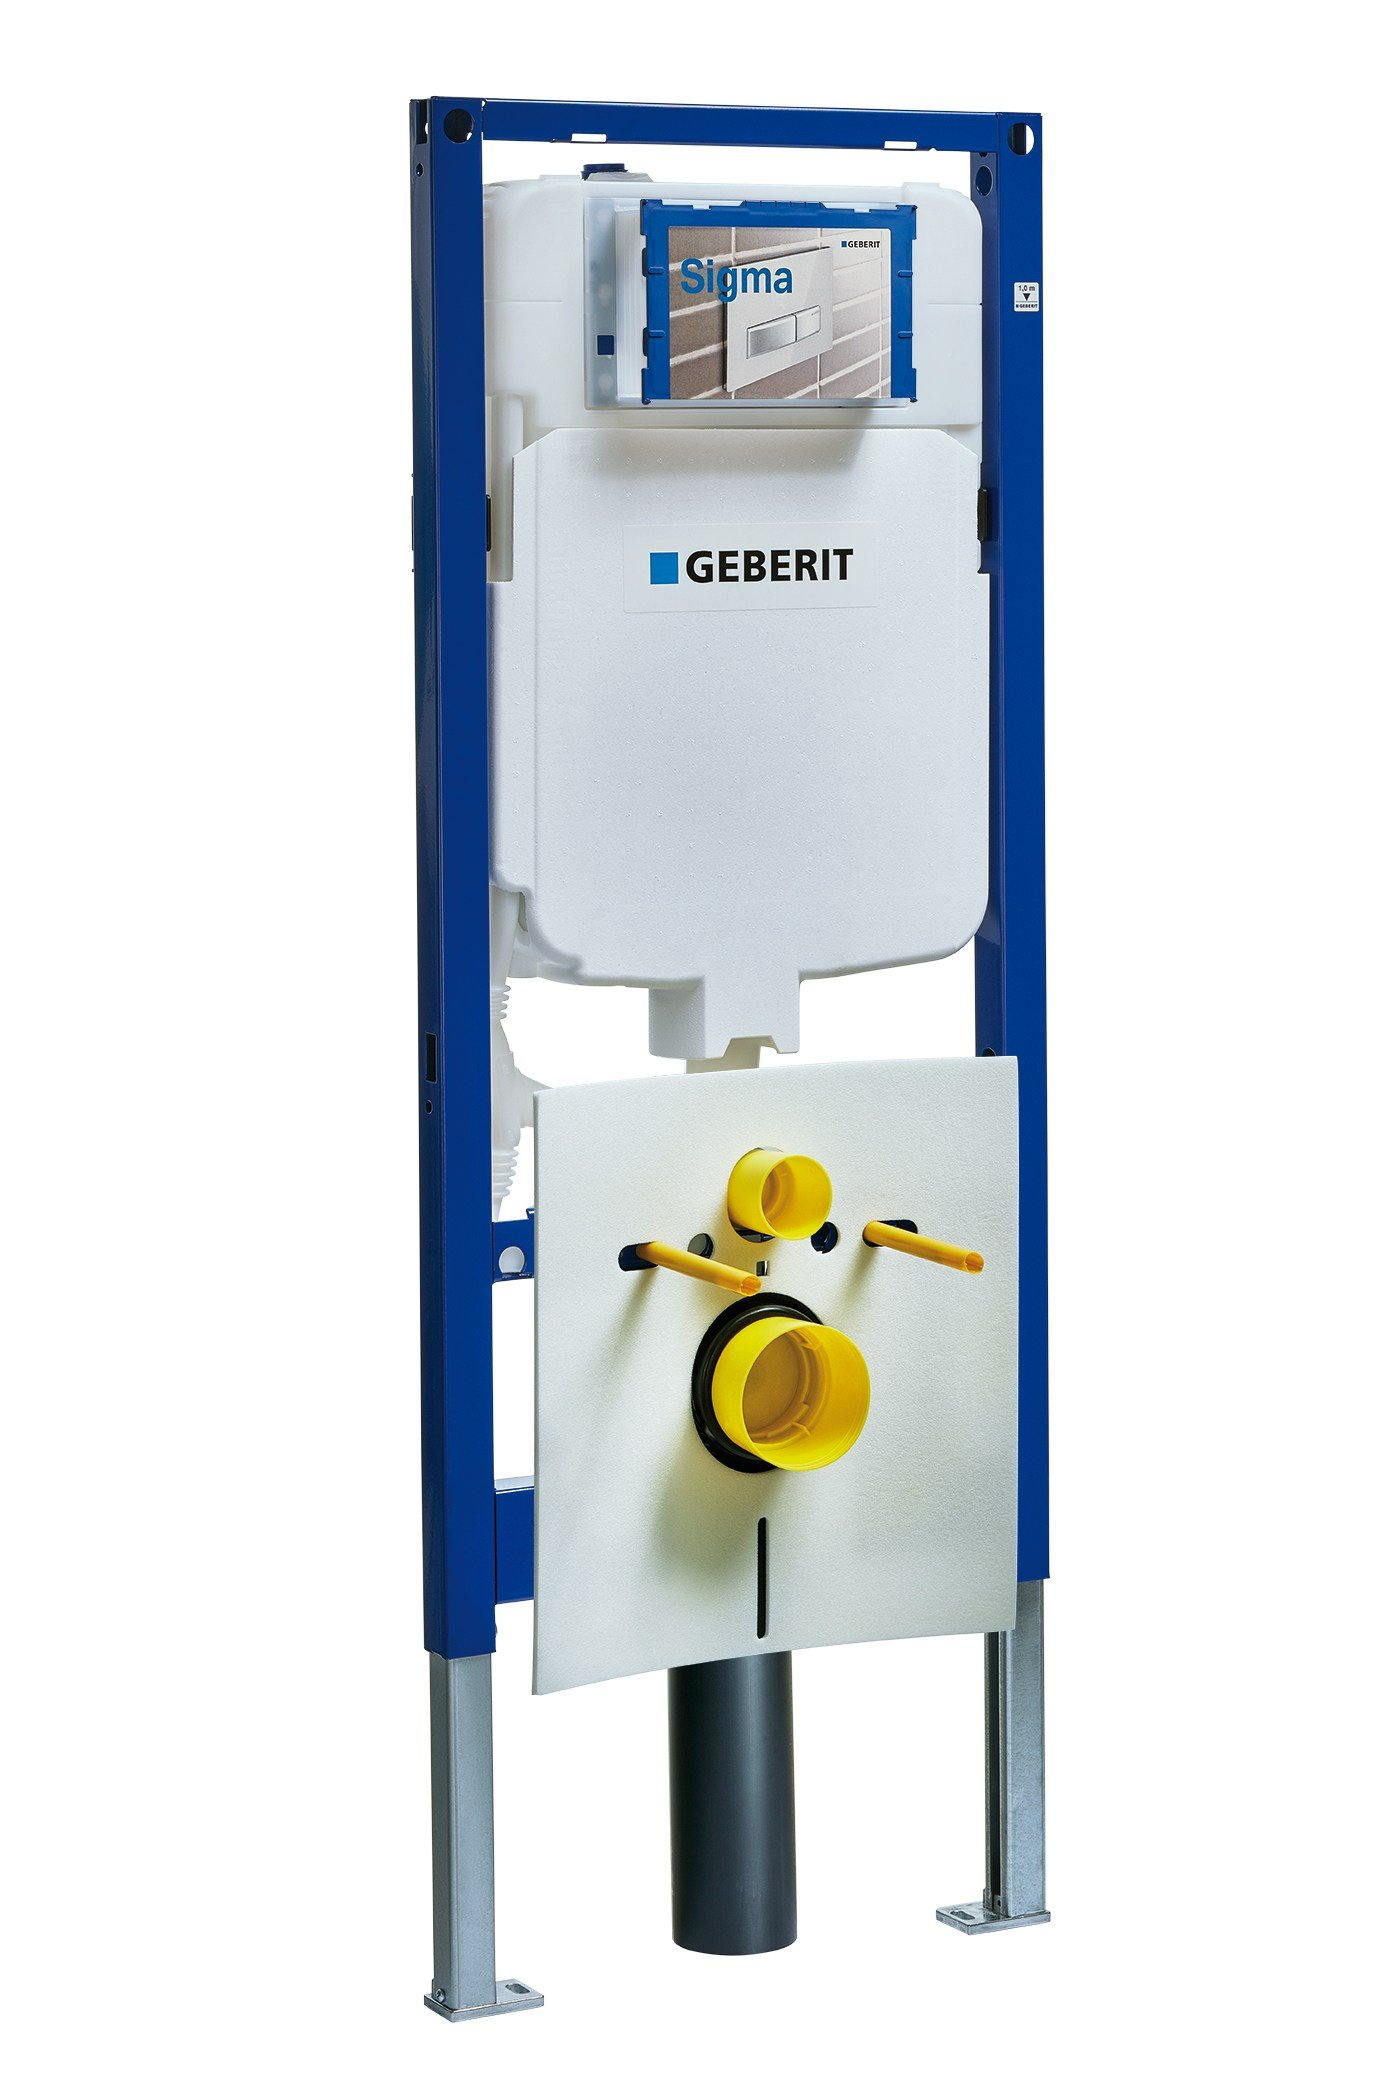 Concealed wc cistern duofix by geberit italia for Geberit installation system